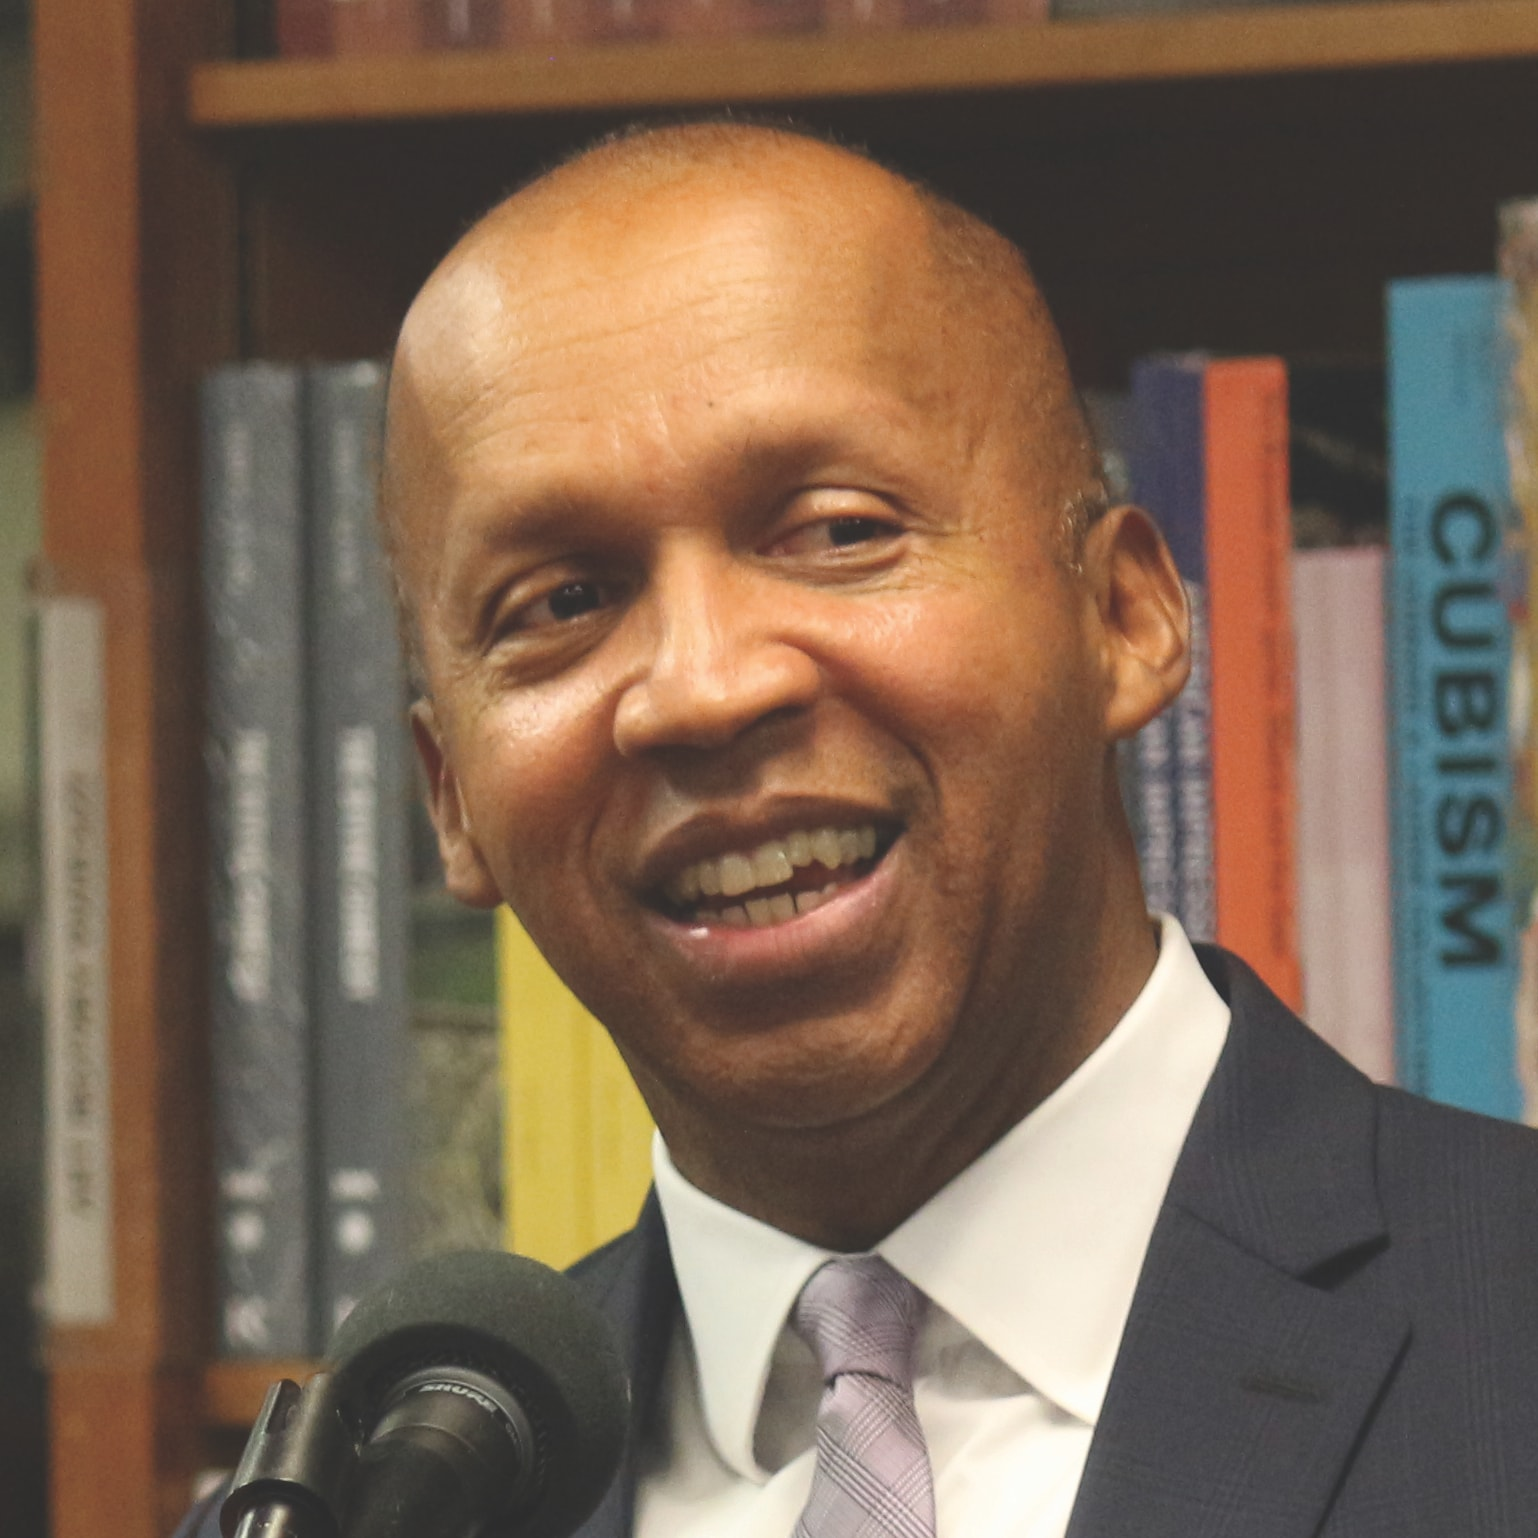 Picture of Bryan Stevenson